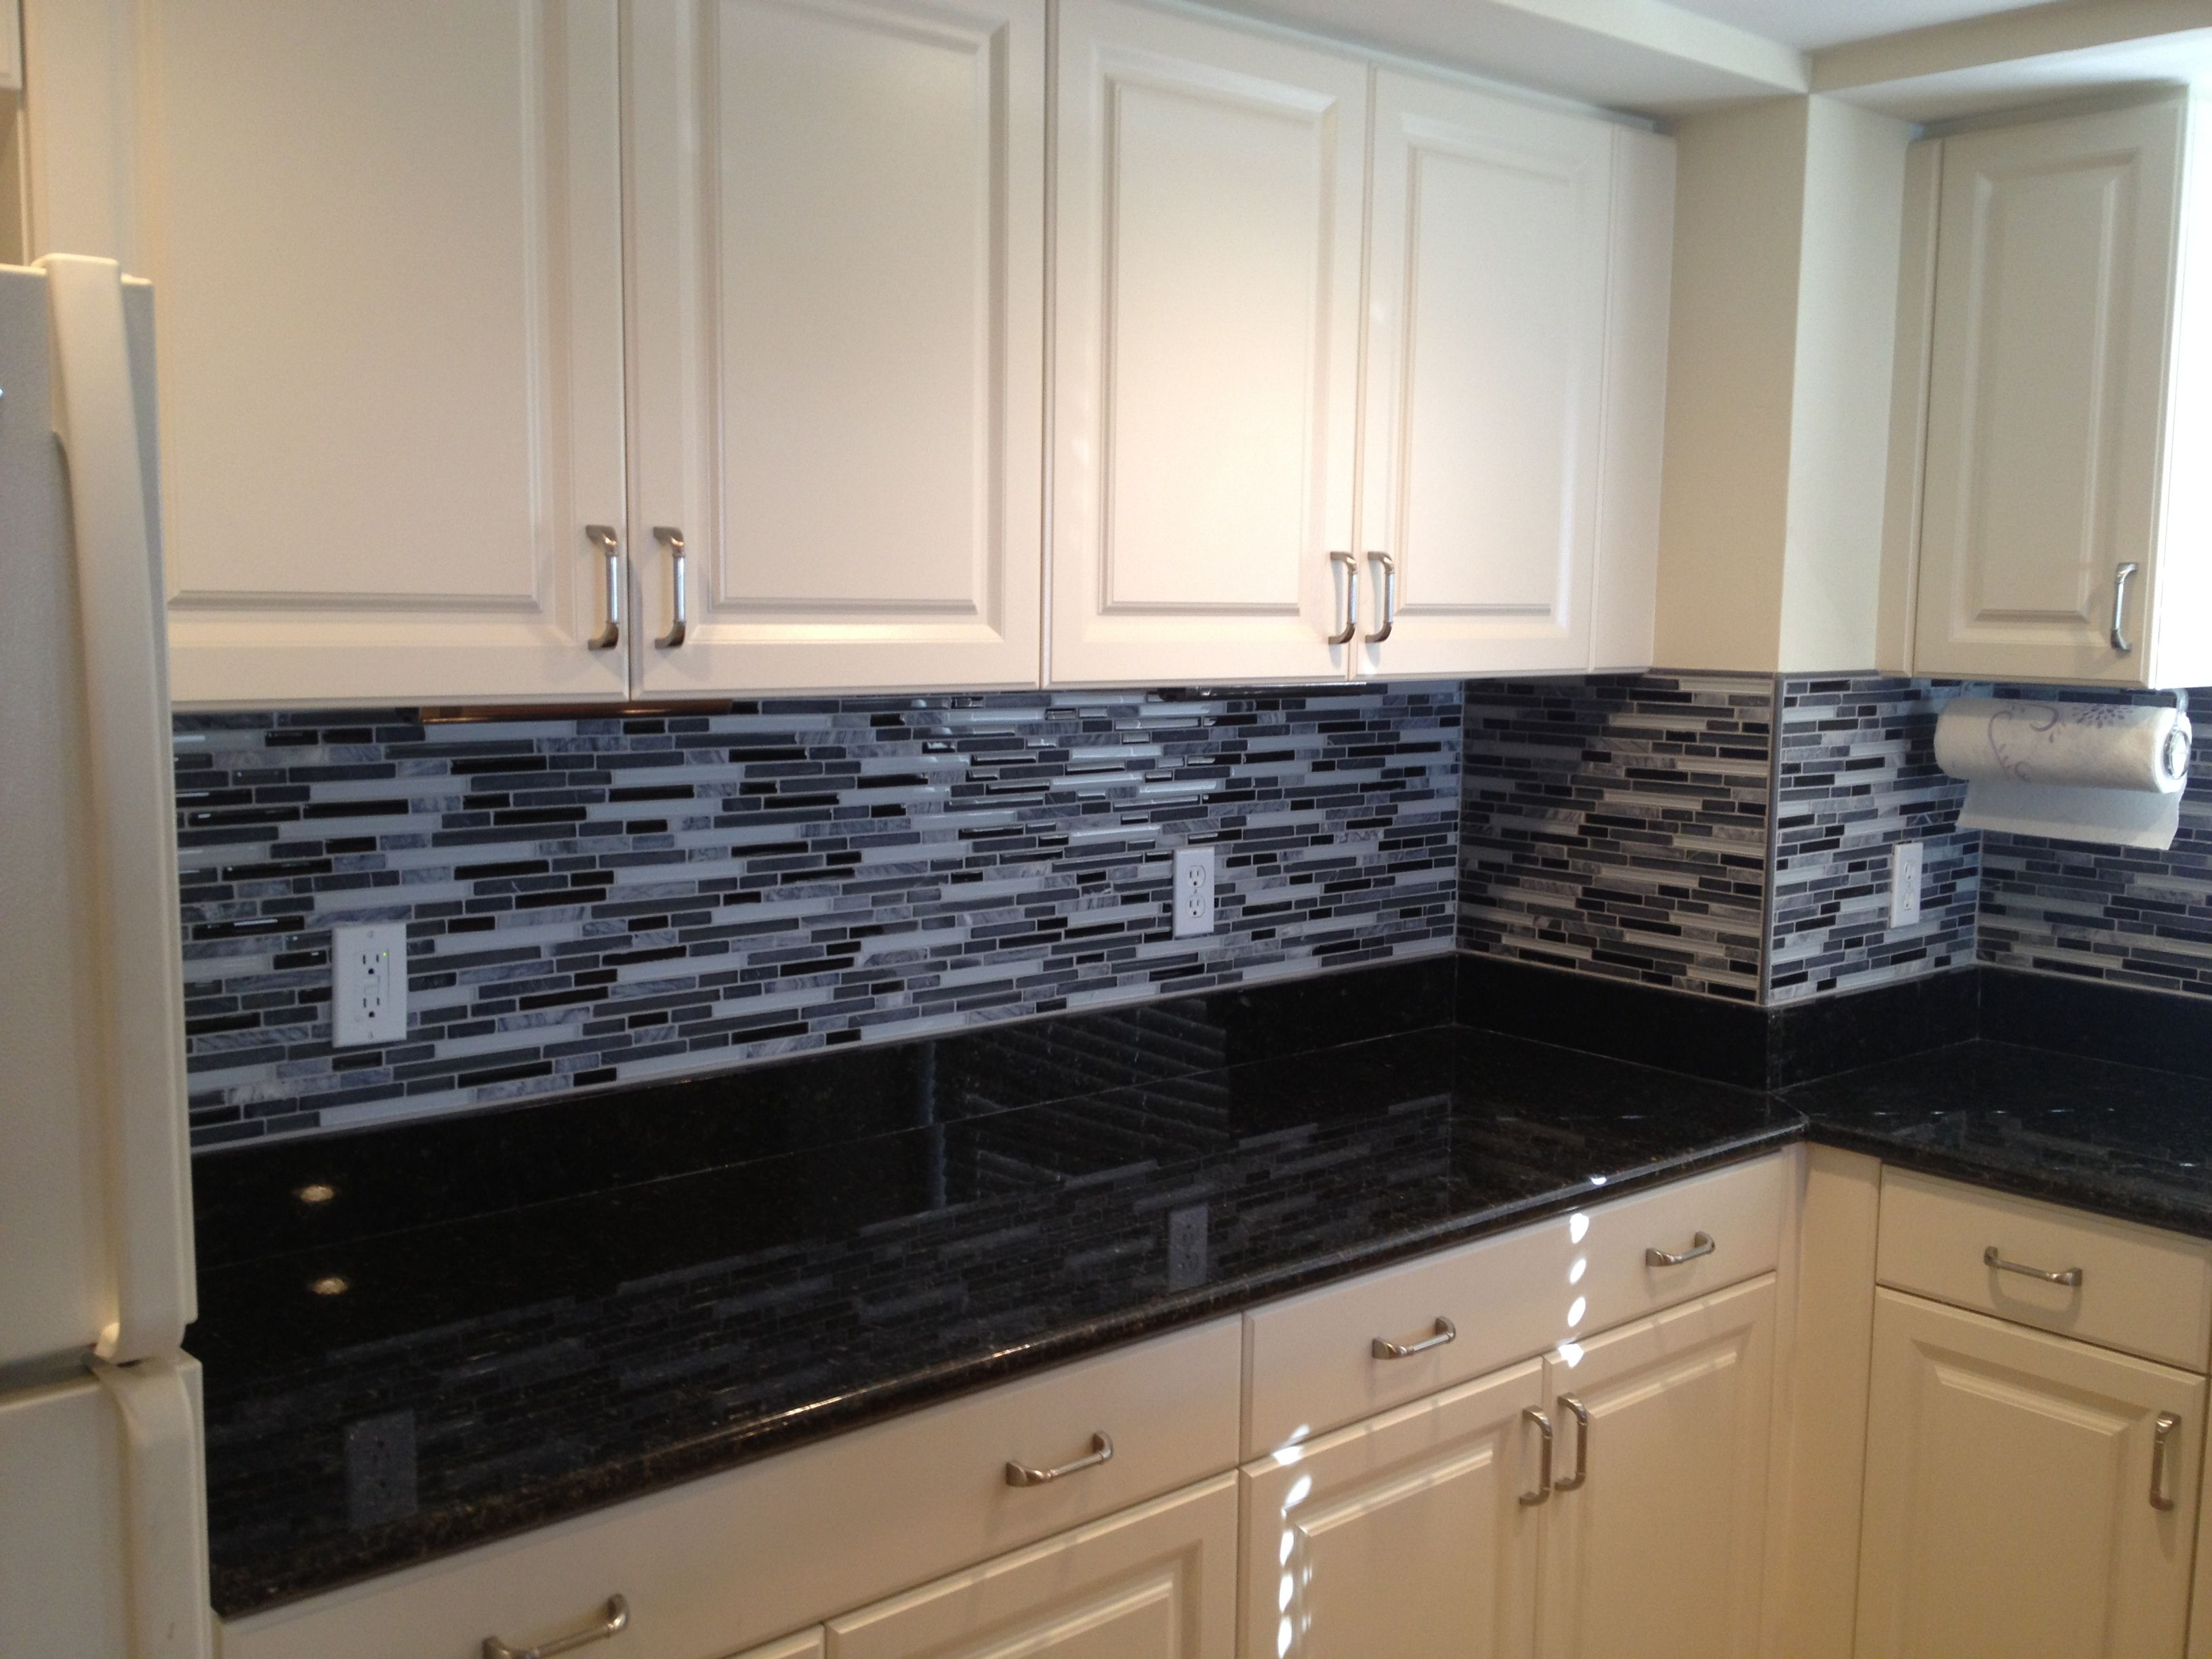 Black And White Tile Kitchen Backsplash Retro Lighting Classic The Glass Stone